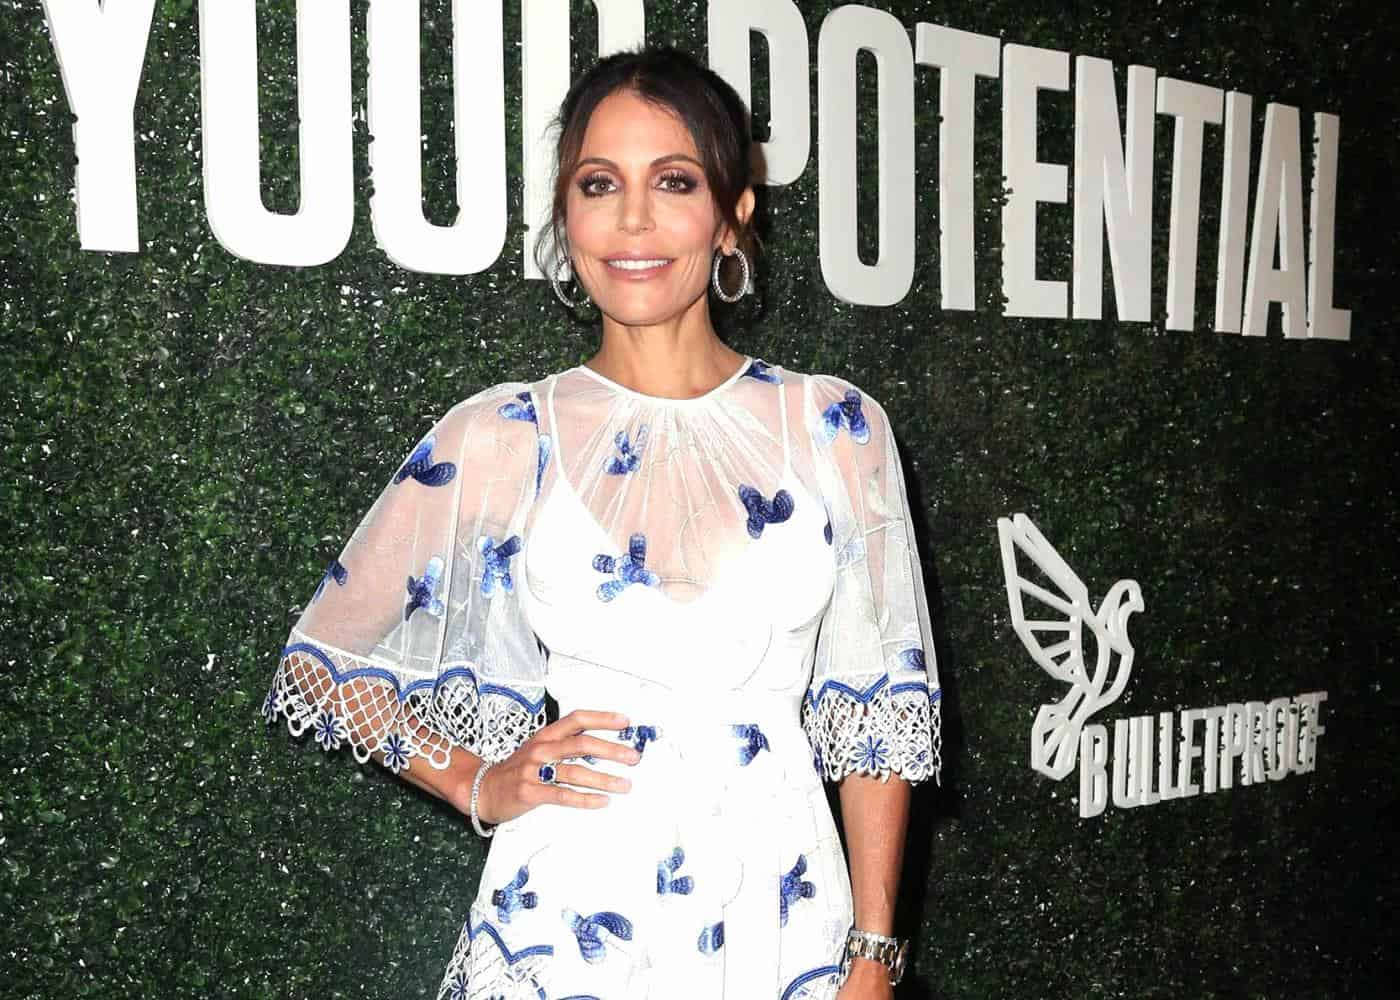 REPORT: Bethenny Frankel Is Writing a Nasty Tell-All Book About Her RHONY Castmates!